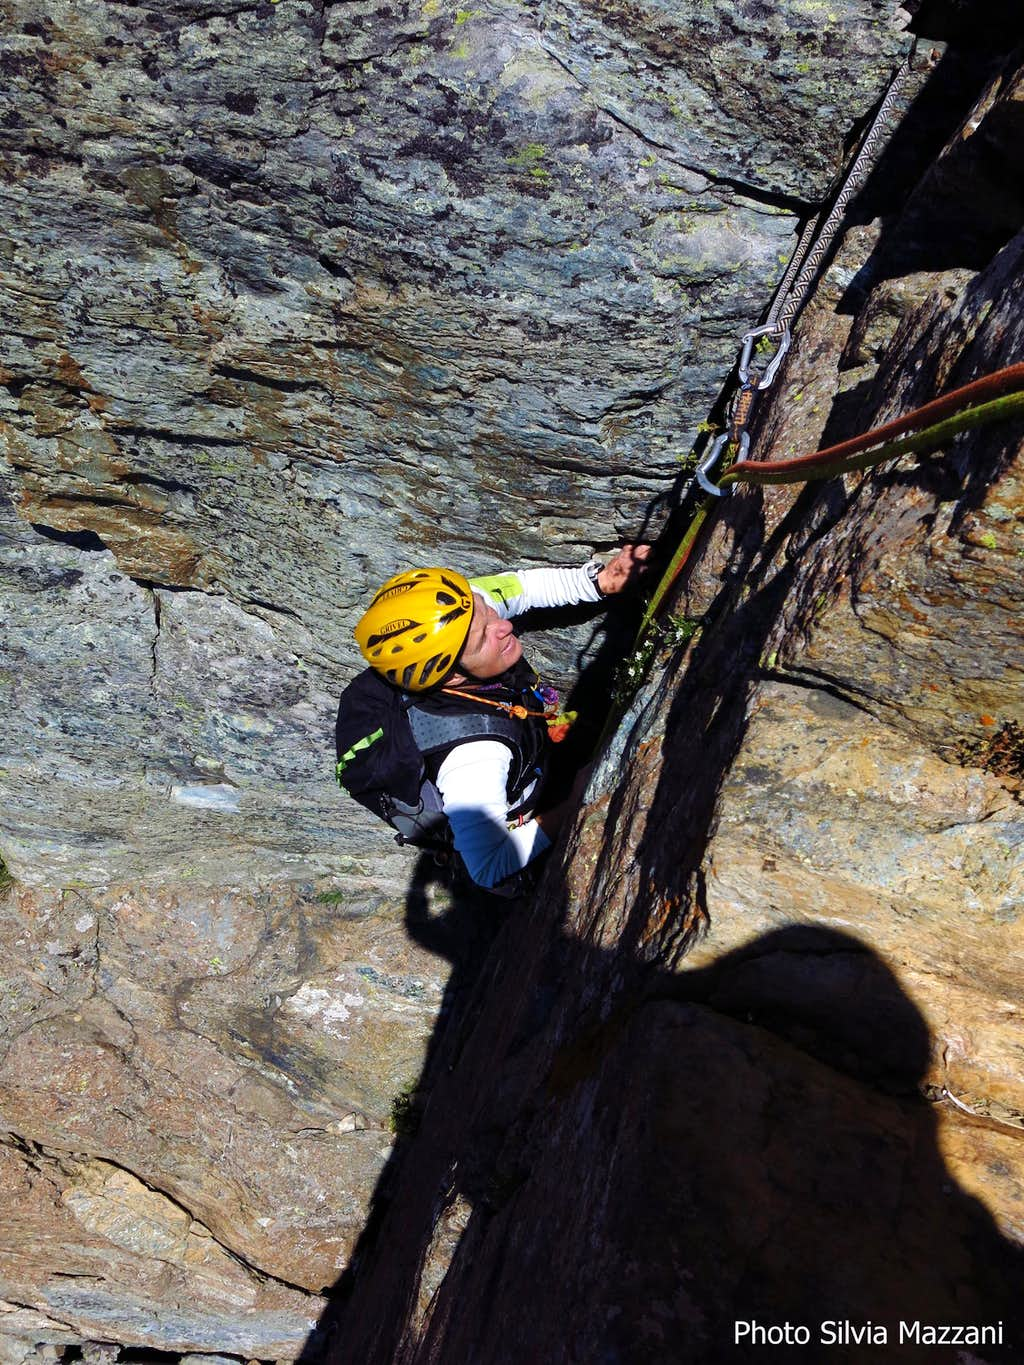 Climbing a dihedral on Superbianciotto route, Cristalliera